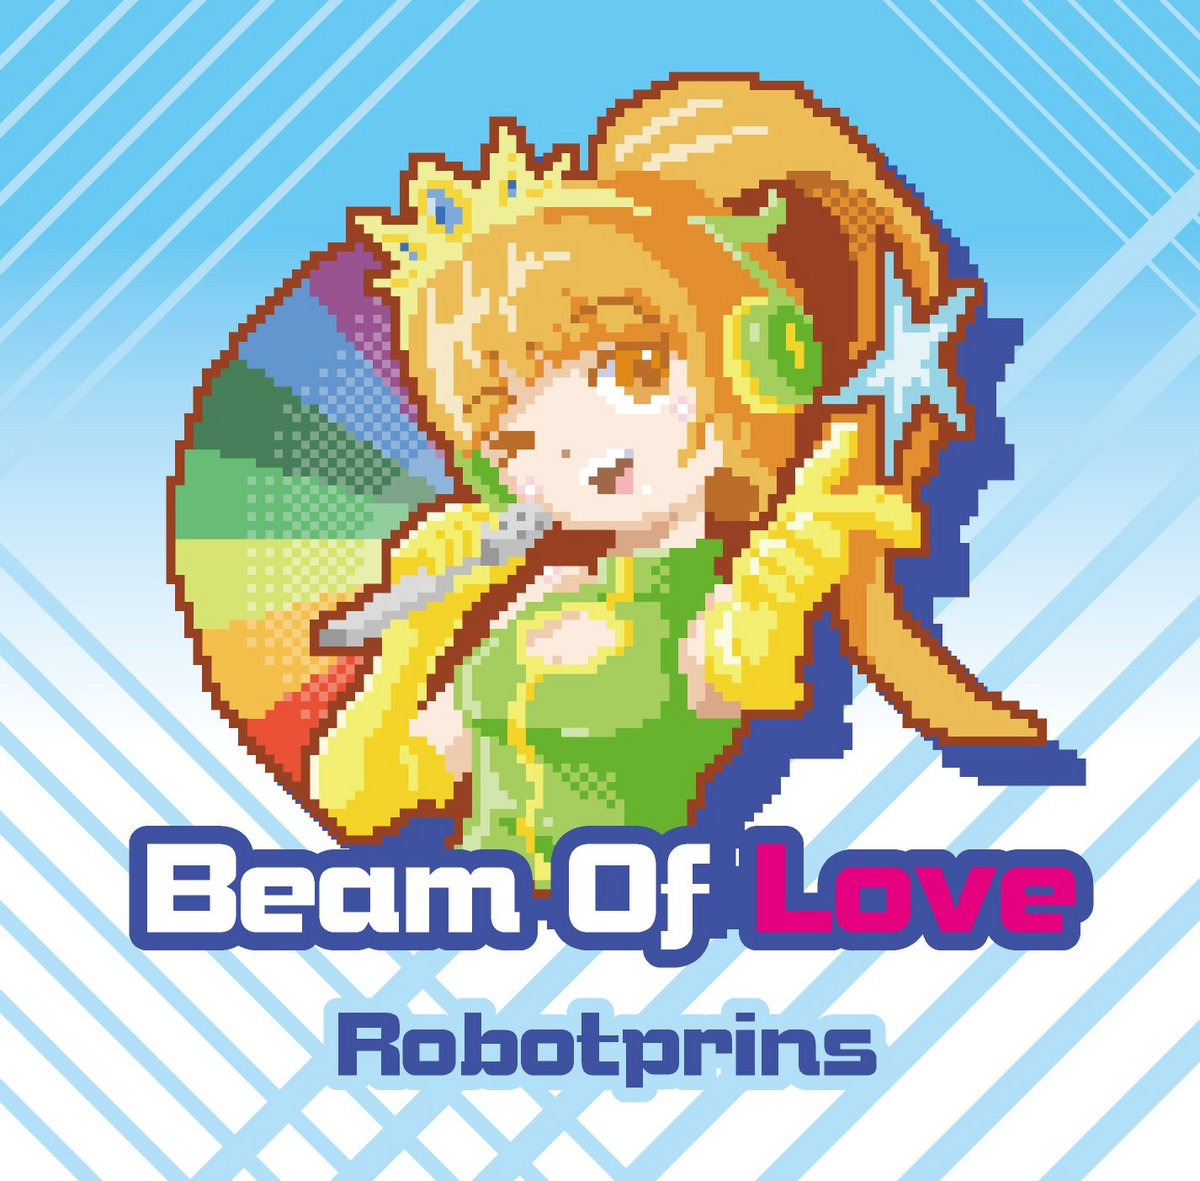 robotprins-beam-of-love